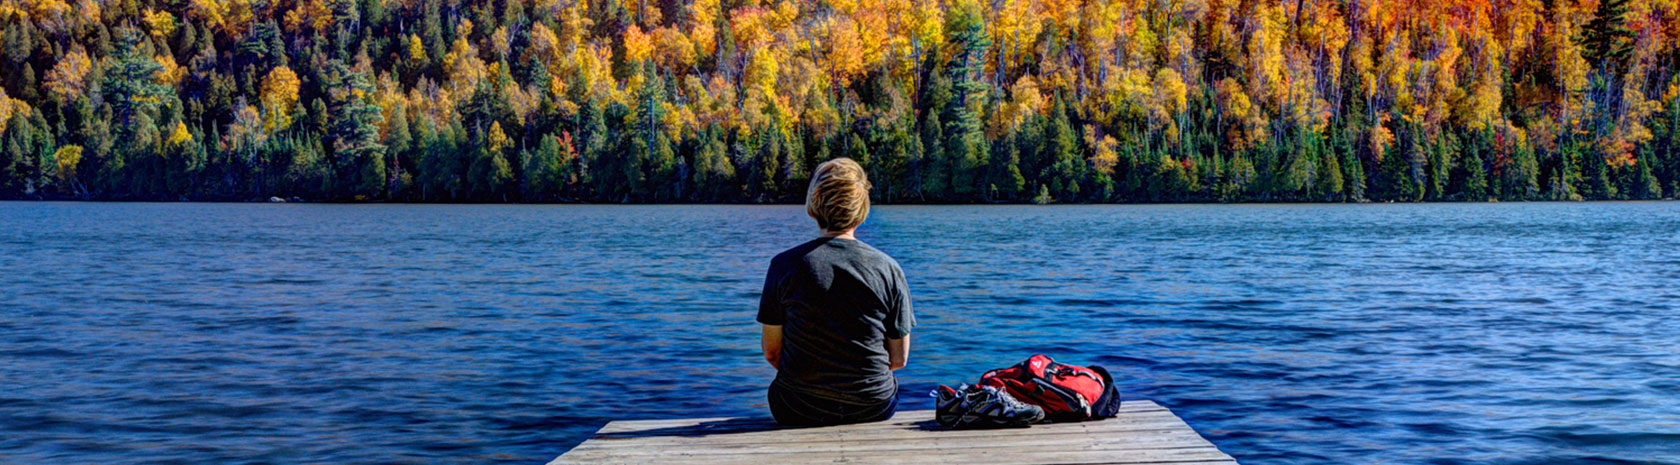 A young man sits at the edge of a pier with his back to the camera staring at the lake and autumn colored trees ahead